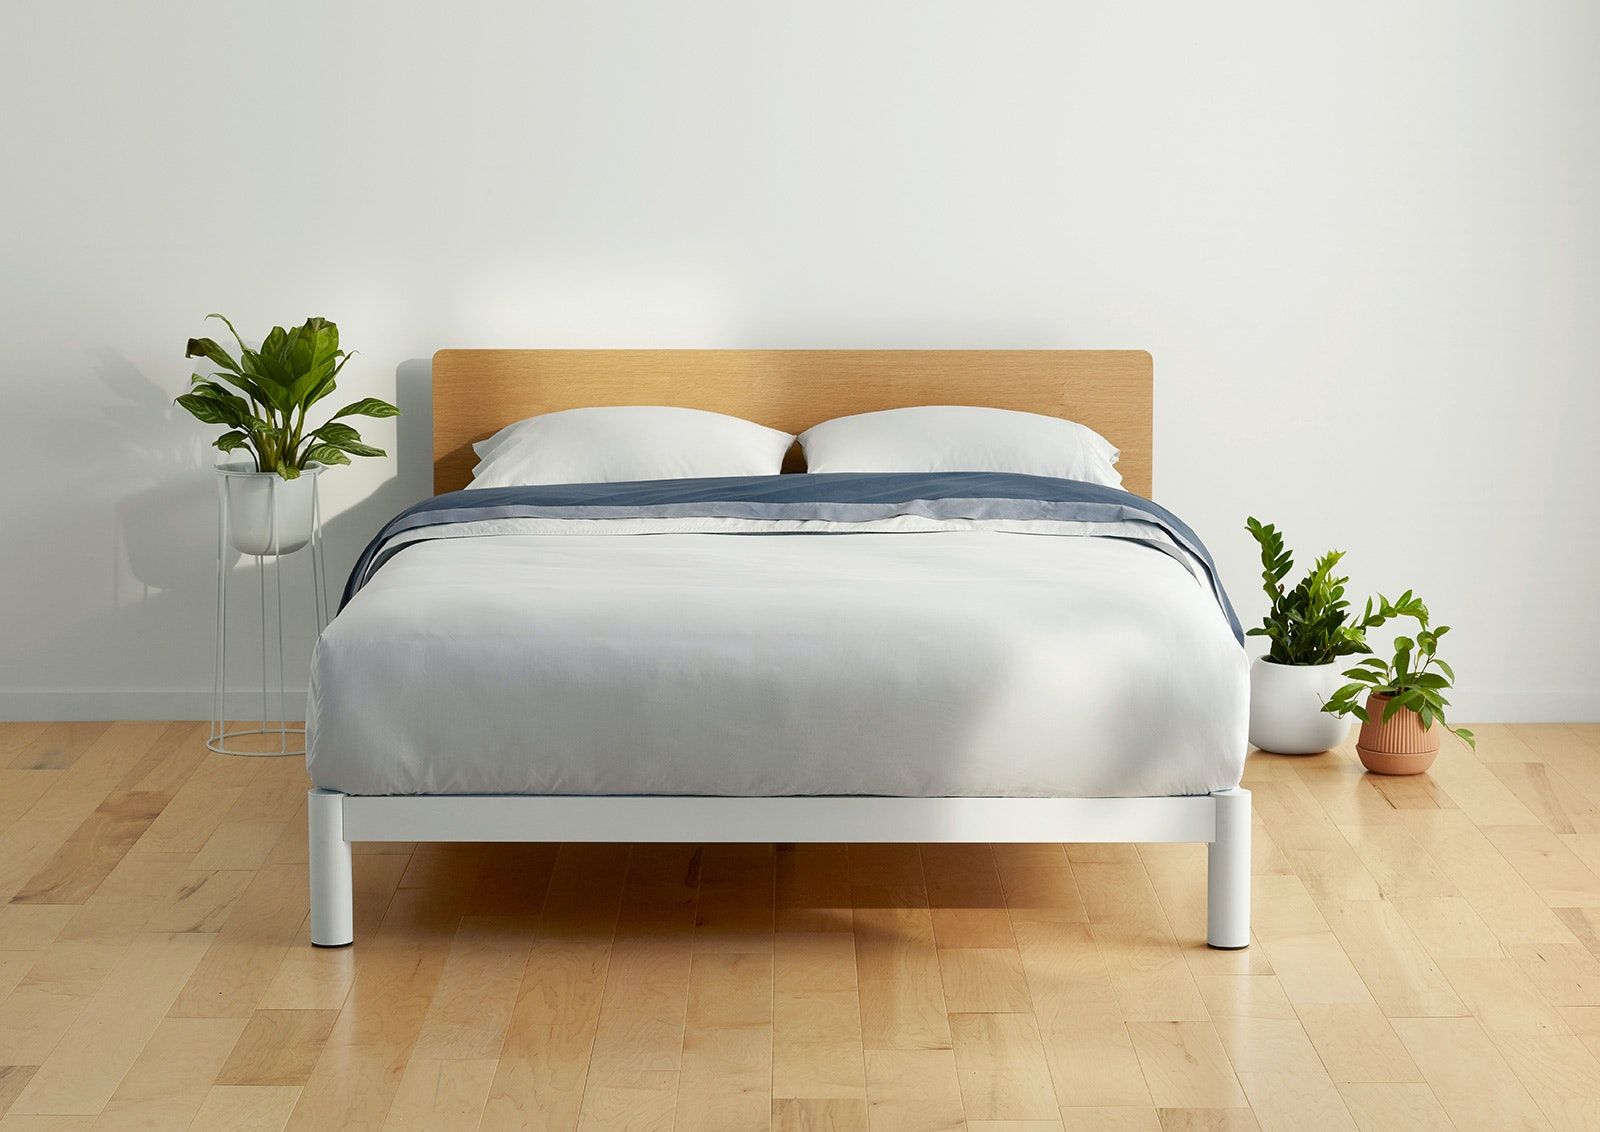 The Platform Bed Frame Base Casper